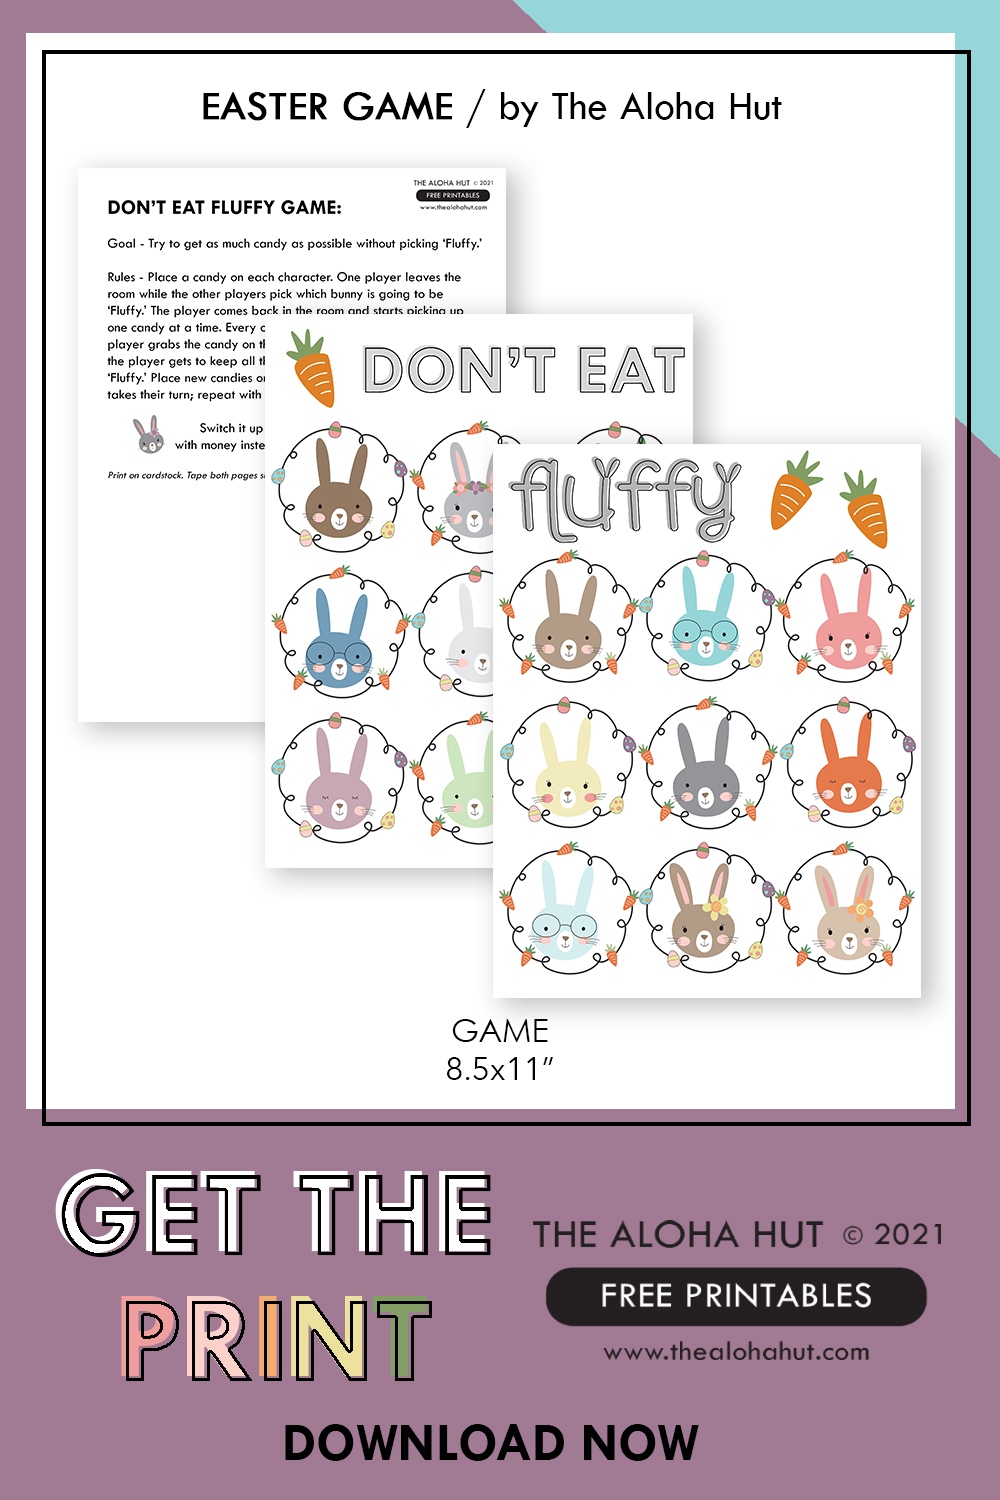 Don't Eat Fluffy free printable Easter Game download by the Aloha Hut